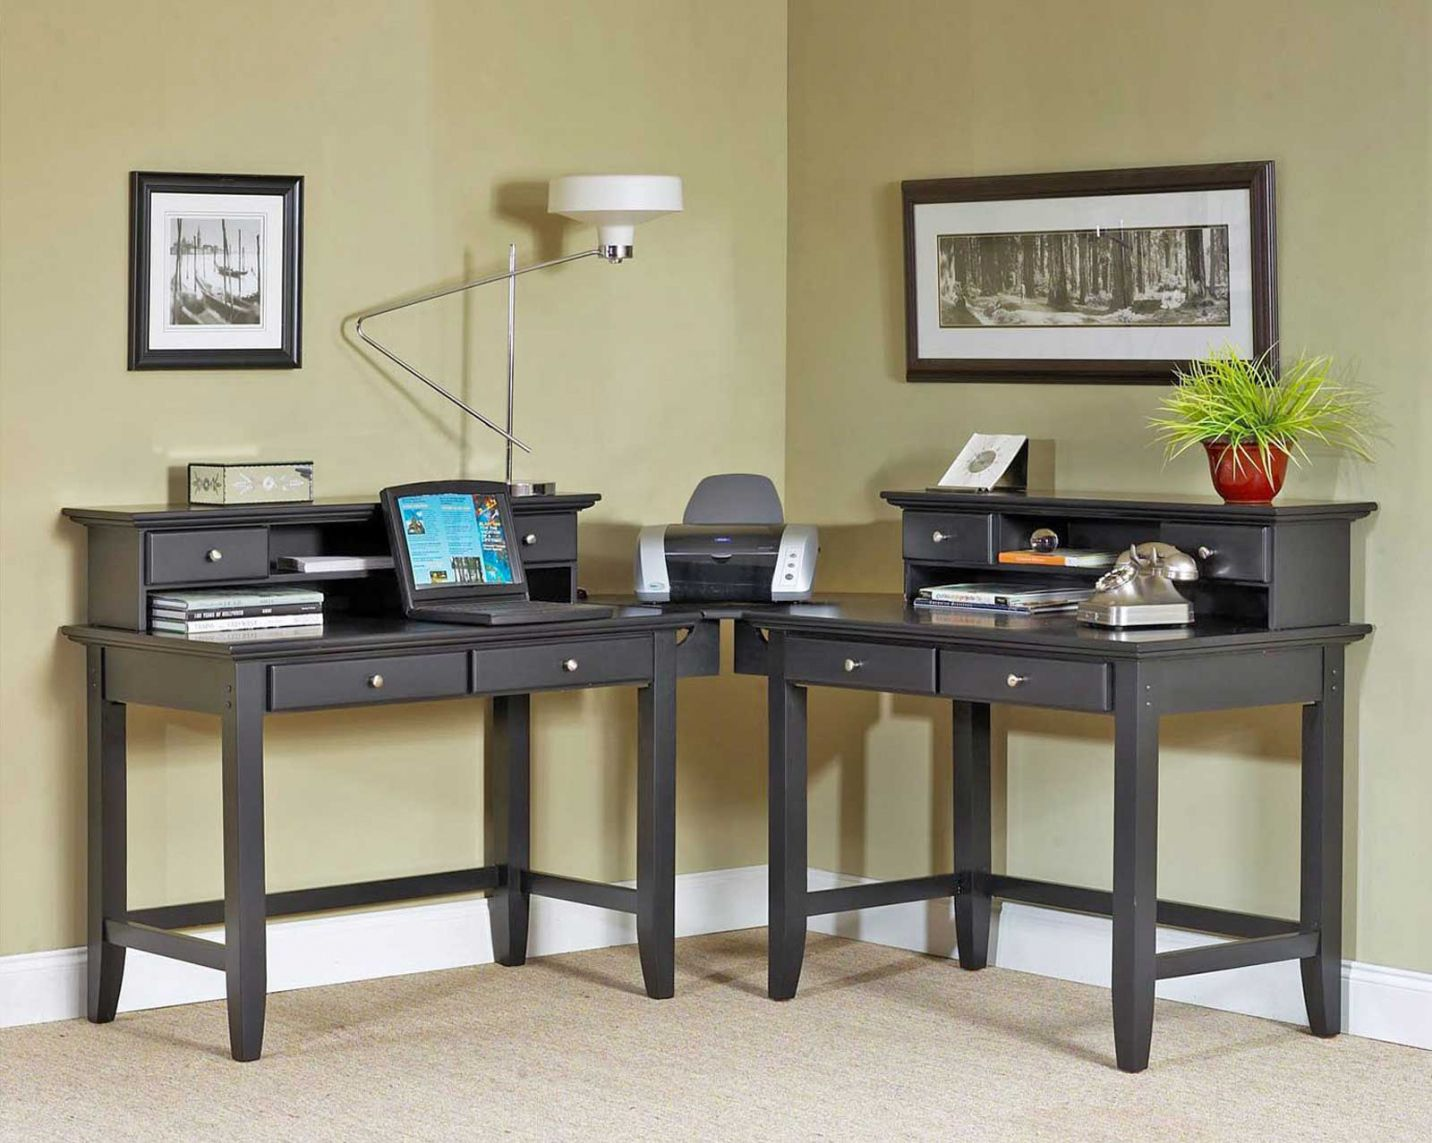 home office desks sets. Home Office Corner Desk Ideas - Furniture Sets Check More At Http://michael-malarkey.com/home-office-corner-desk-ideas/ | Pinterest Desks C